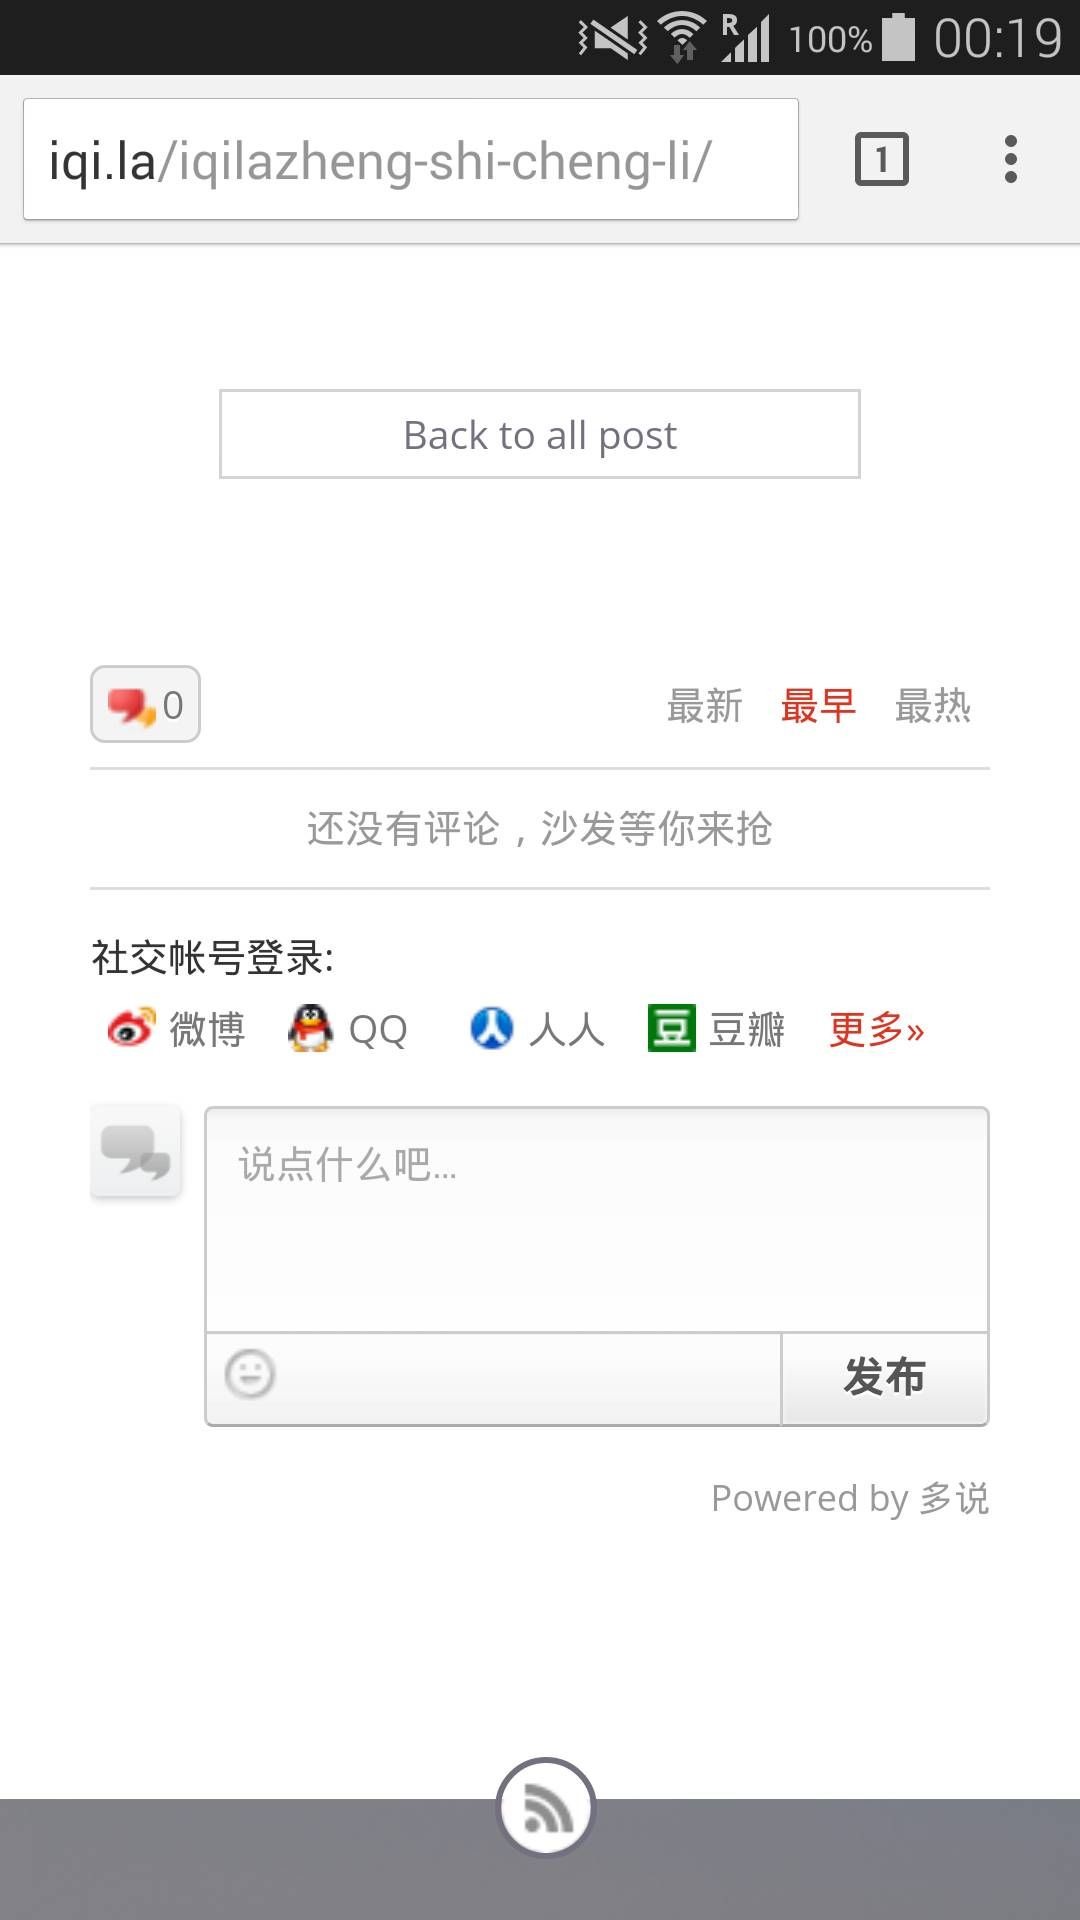 The Screenshot of MobileComment page